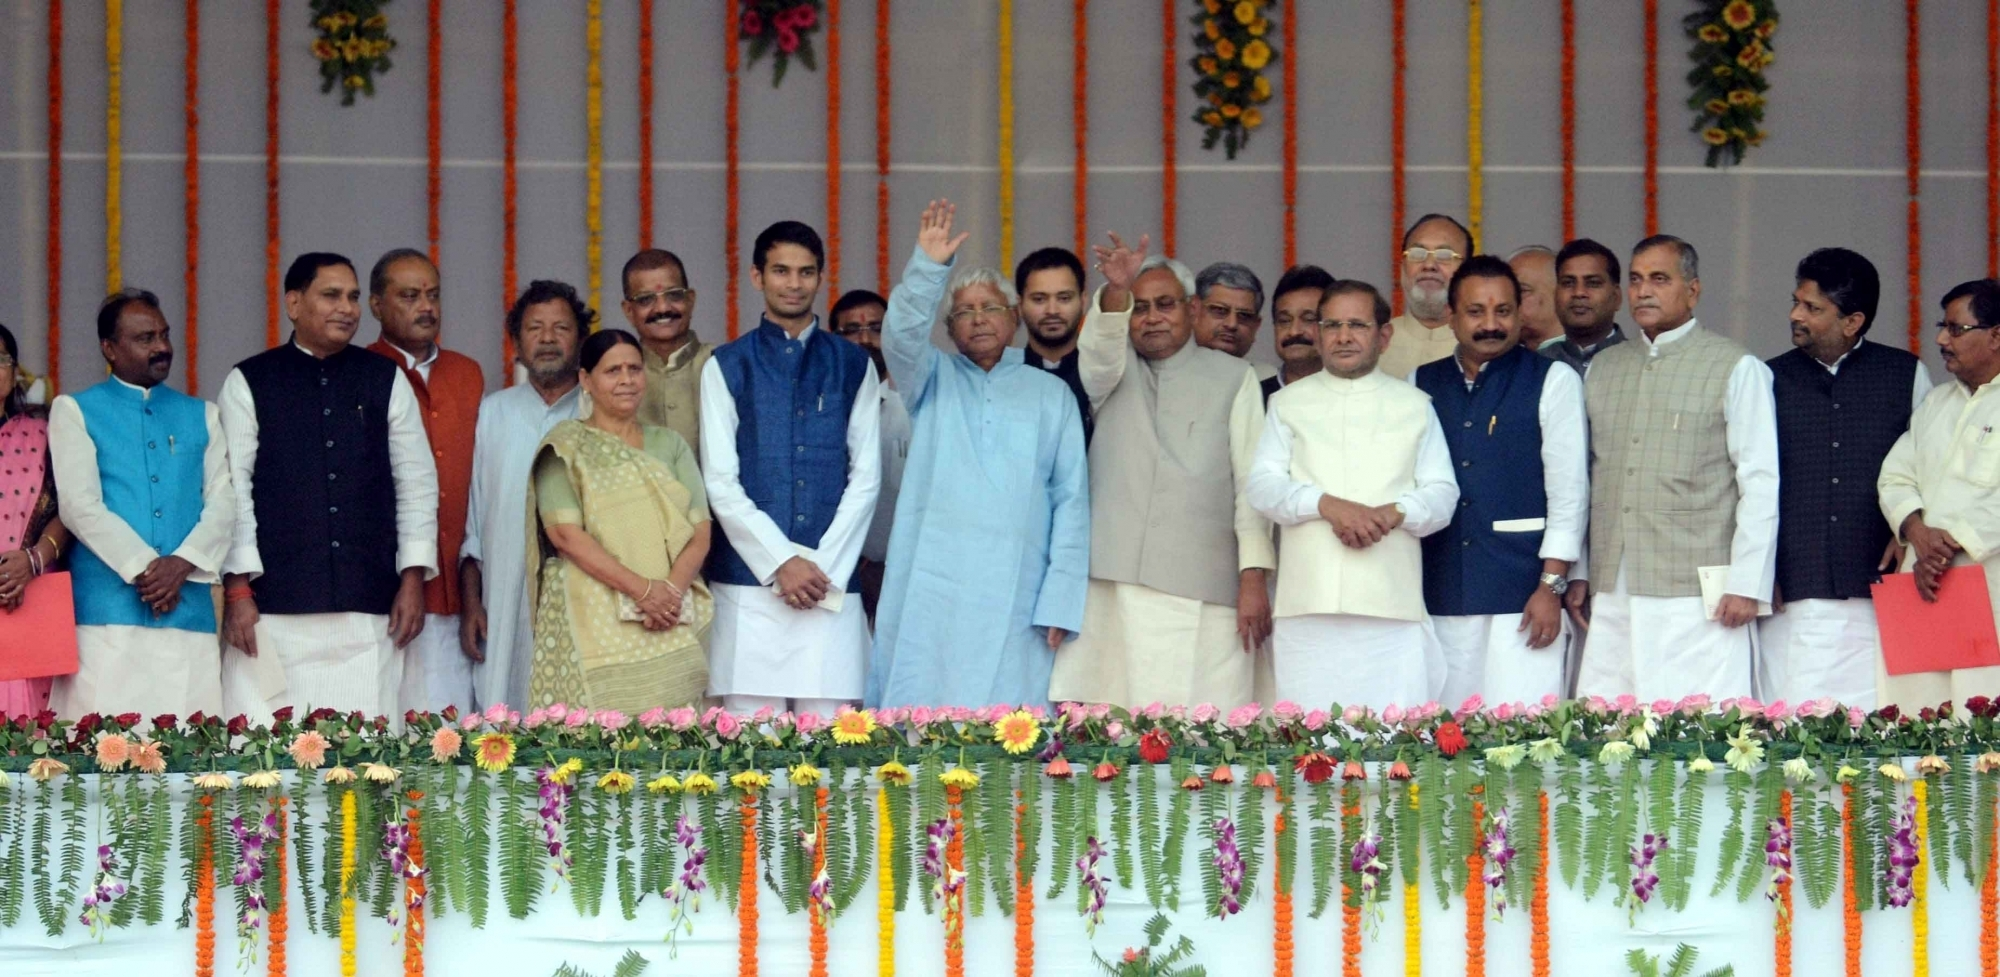 Nitish Kumar and Lalu Yadav at the swearing-in ceremony of the new JD(U)-RJD-Congress coalition government in Patna, on Nov 20, 2015. Photo Credit: IANS